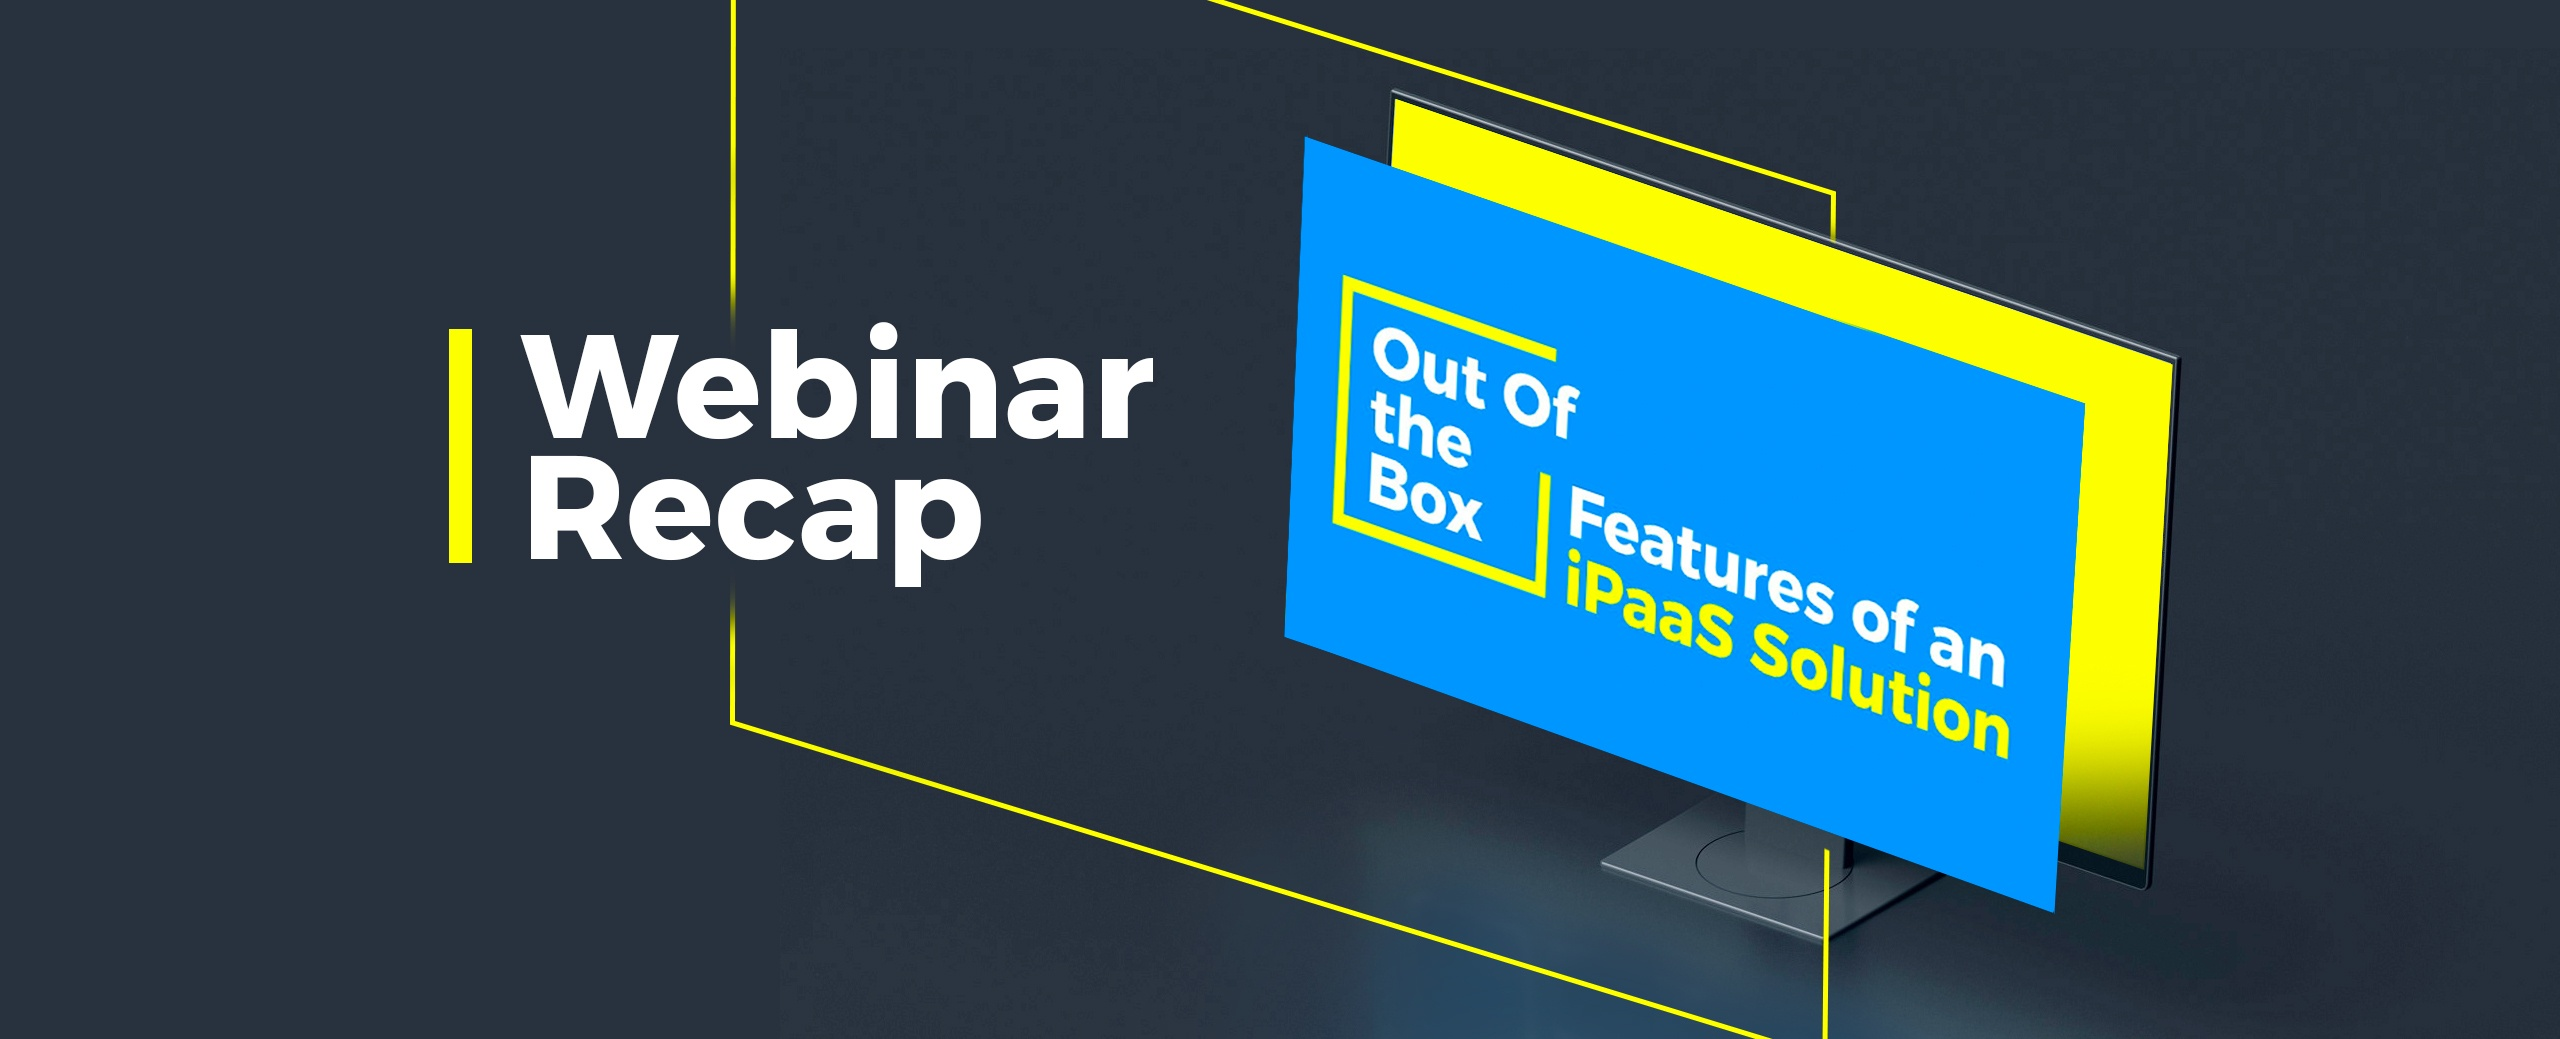 webinar-recap-Out-Of-the-Box-Features-of-an-iPaaS--Cloud-Integration-Platform